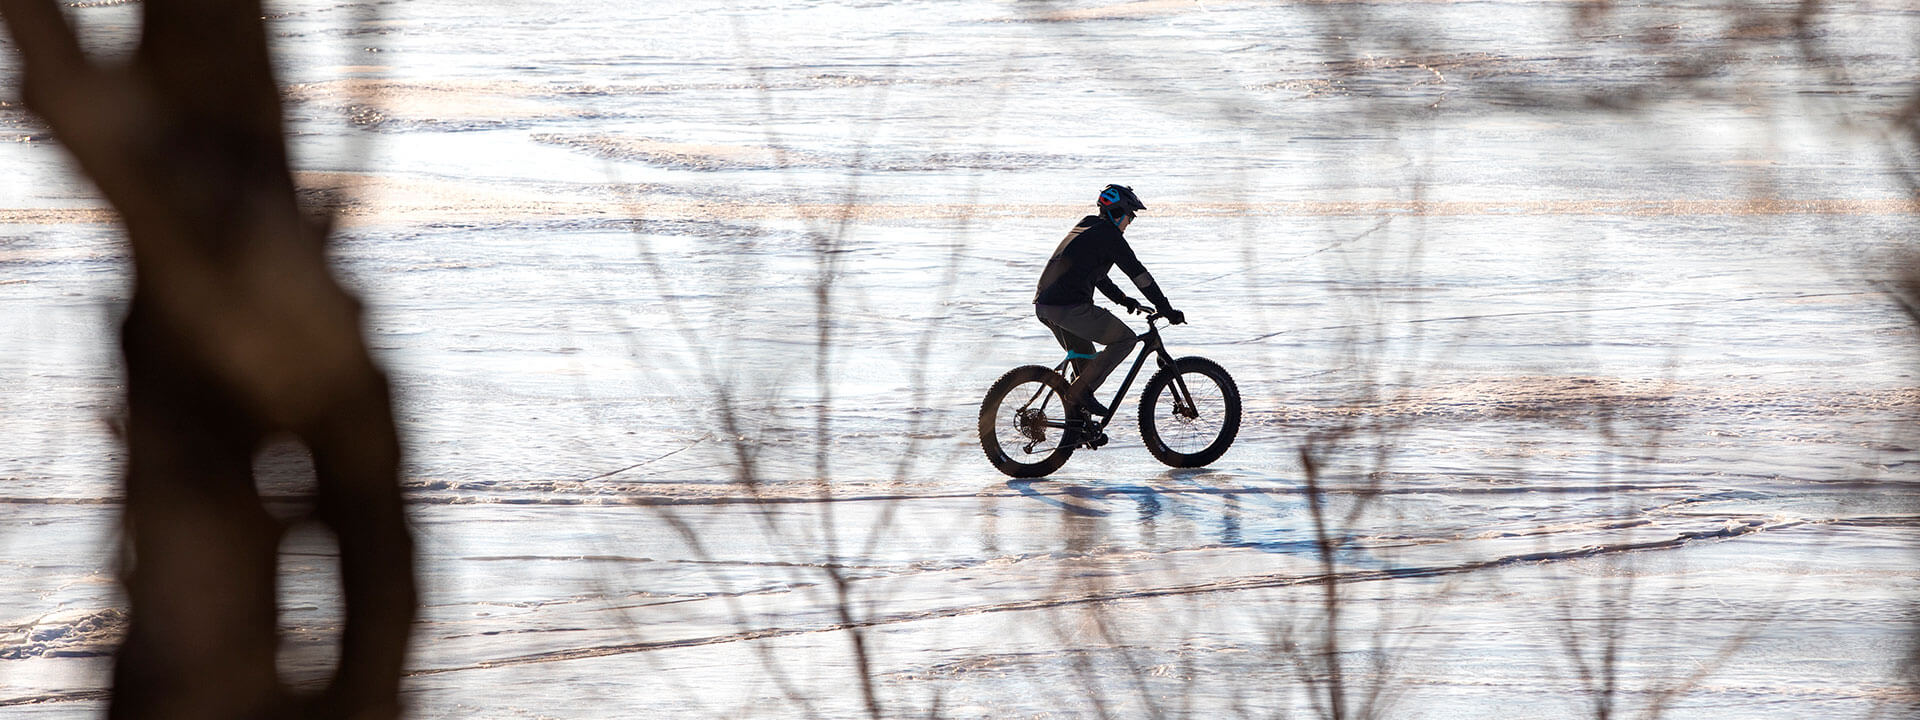 Cyclist on bike with studded tires riding across frozen lake.